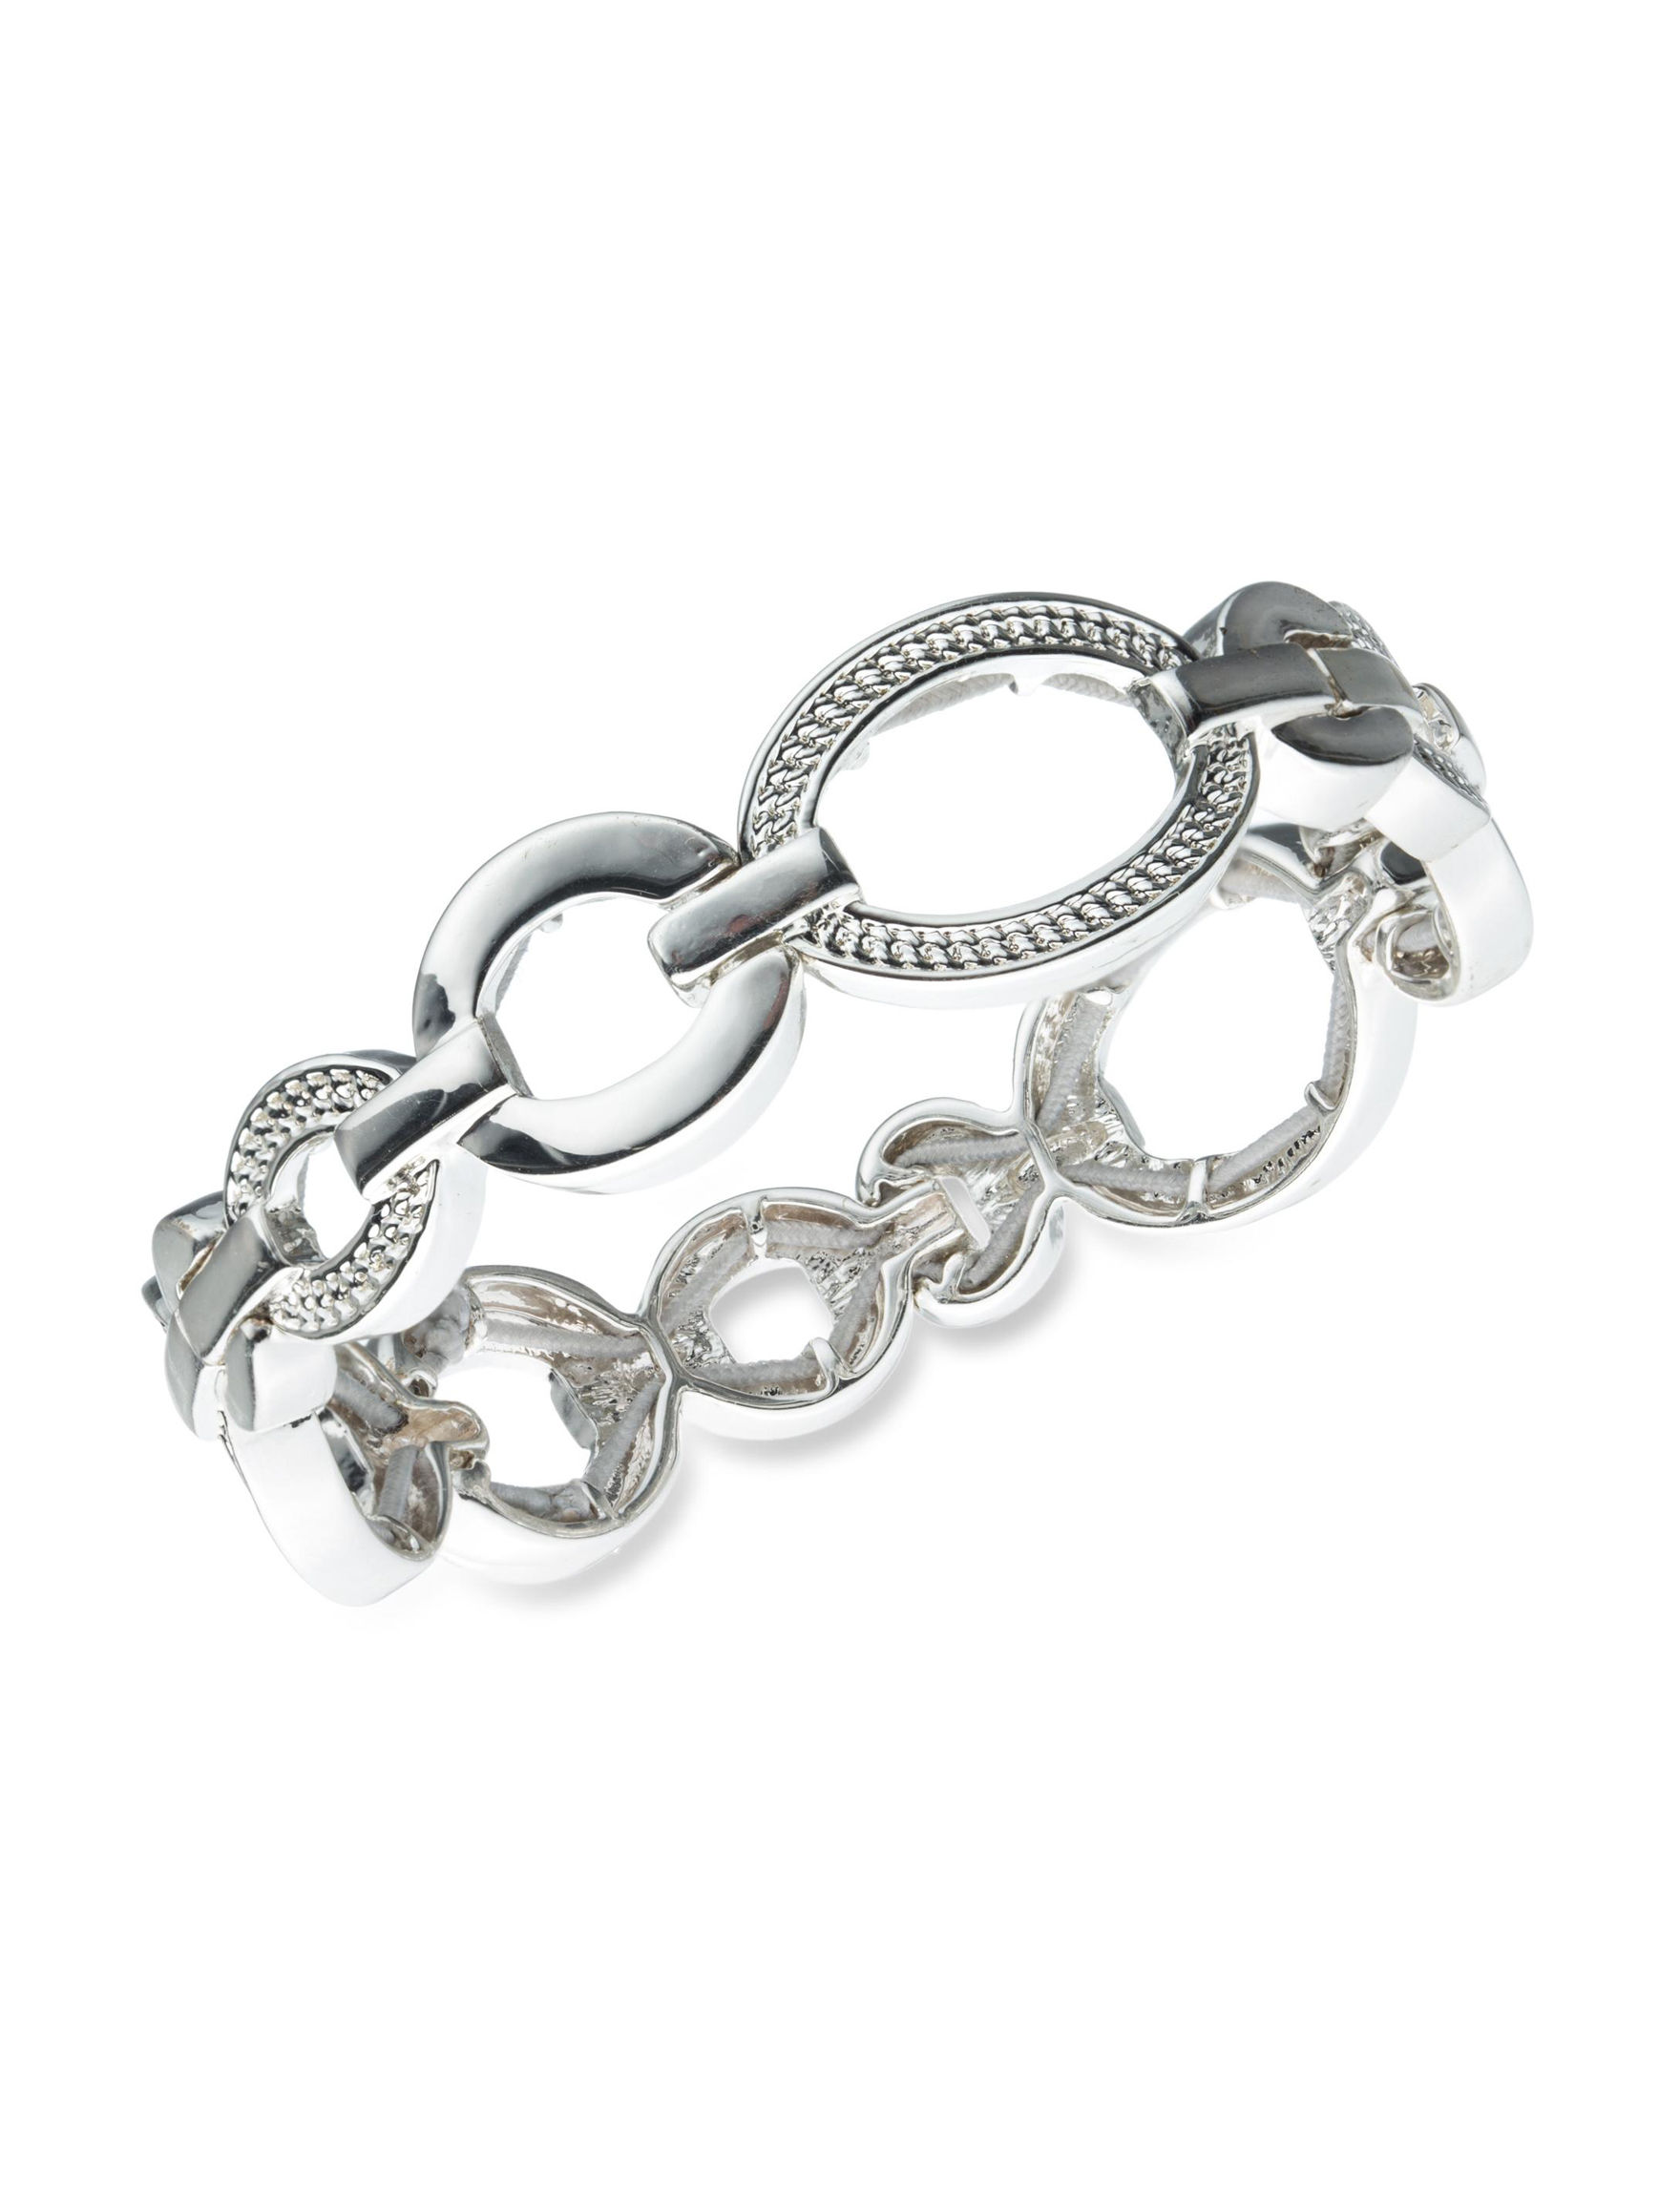 Gloria Vanderbilt Silver Bracelets Fashion Jewelry